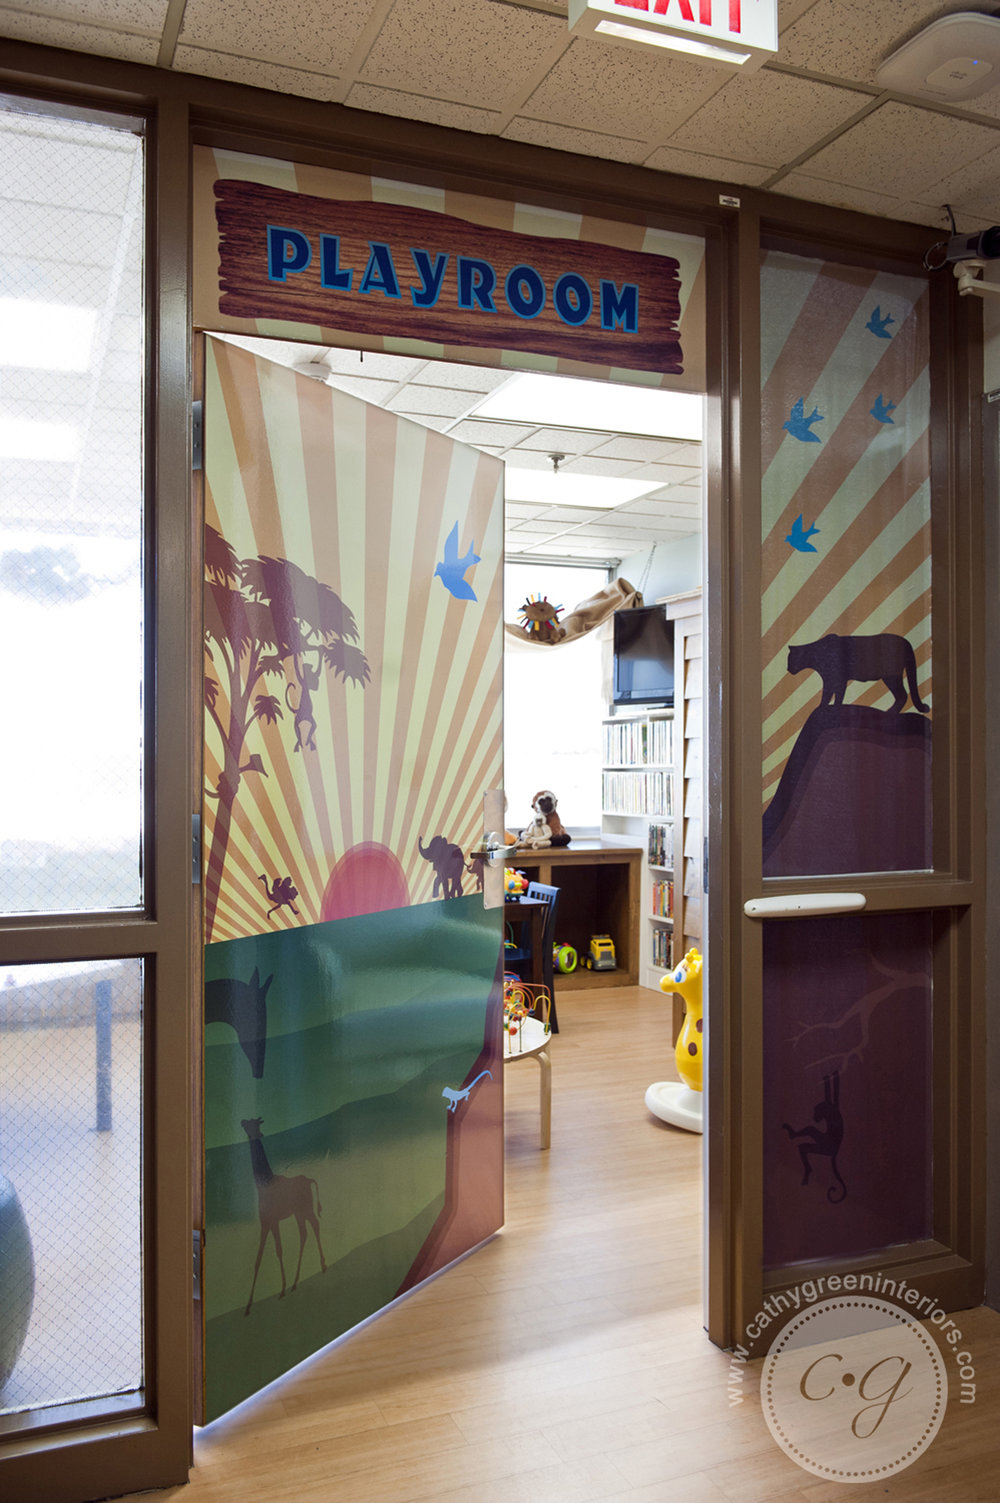 Chippenham Hospital Playroom door - Richmond, VA